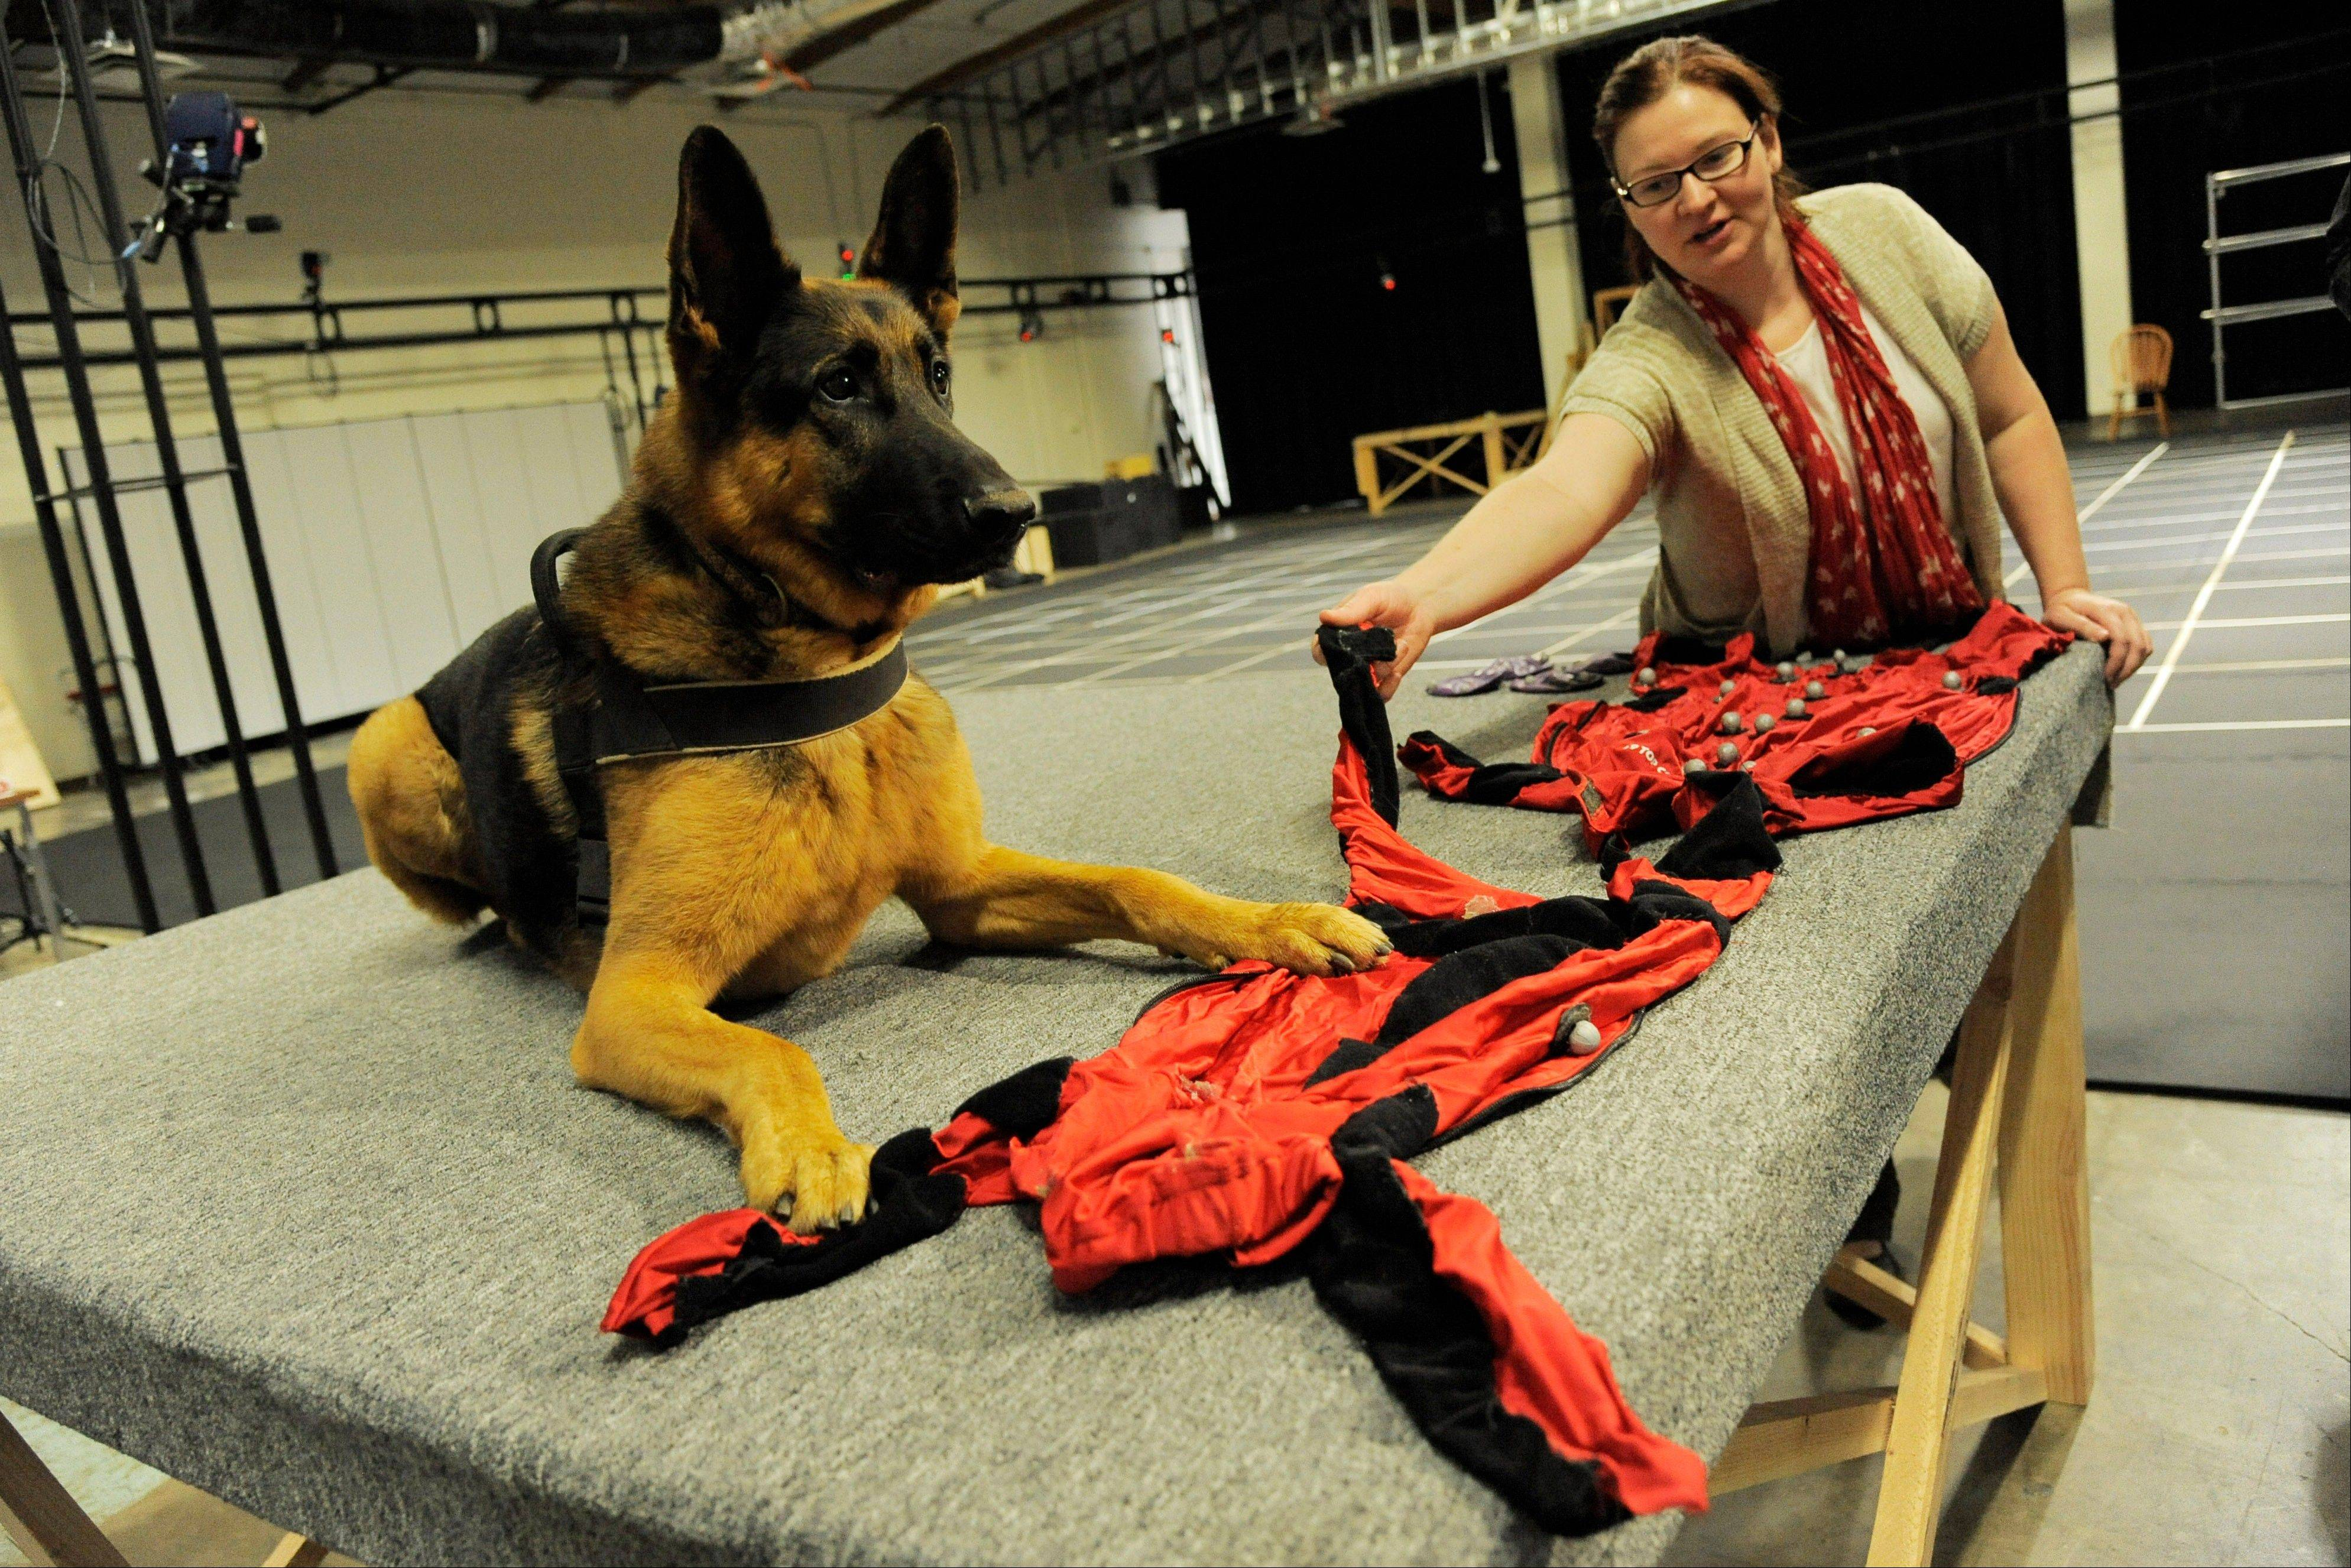 Motion capture supervisor Kristina Adelmeyer shows off the motion capture sensors worn by the dog Rugger in capturing his movements for video game footage, at Neversoft Motion Capture Studio in Los Angeles.